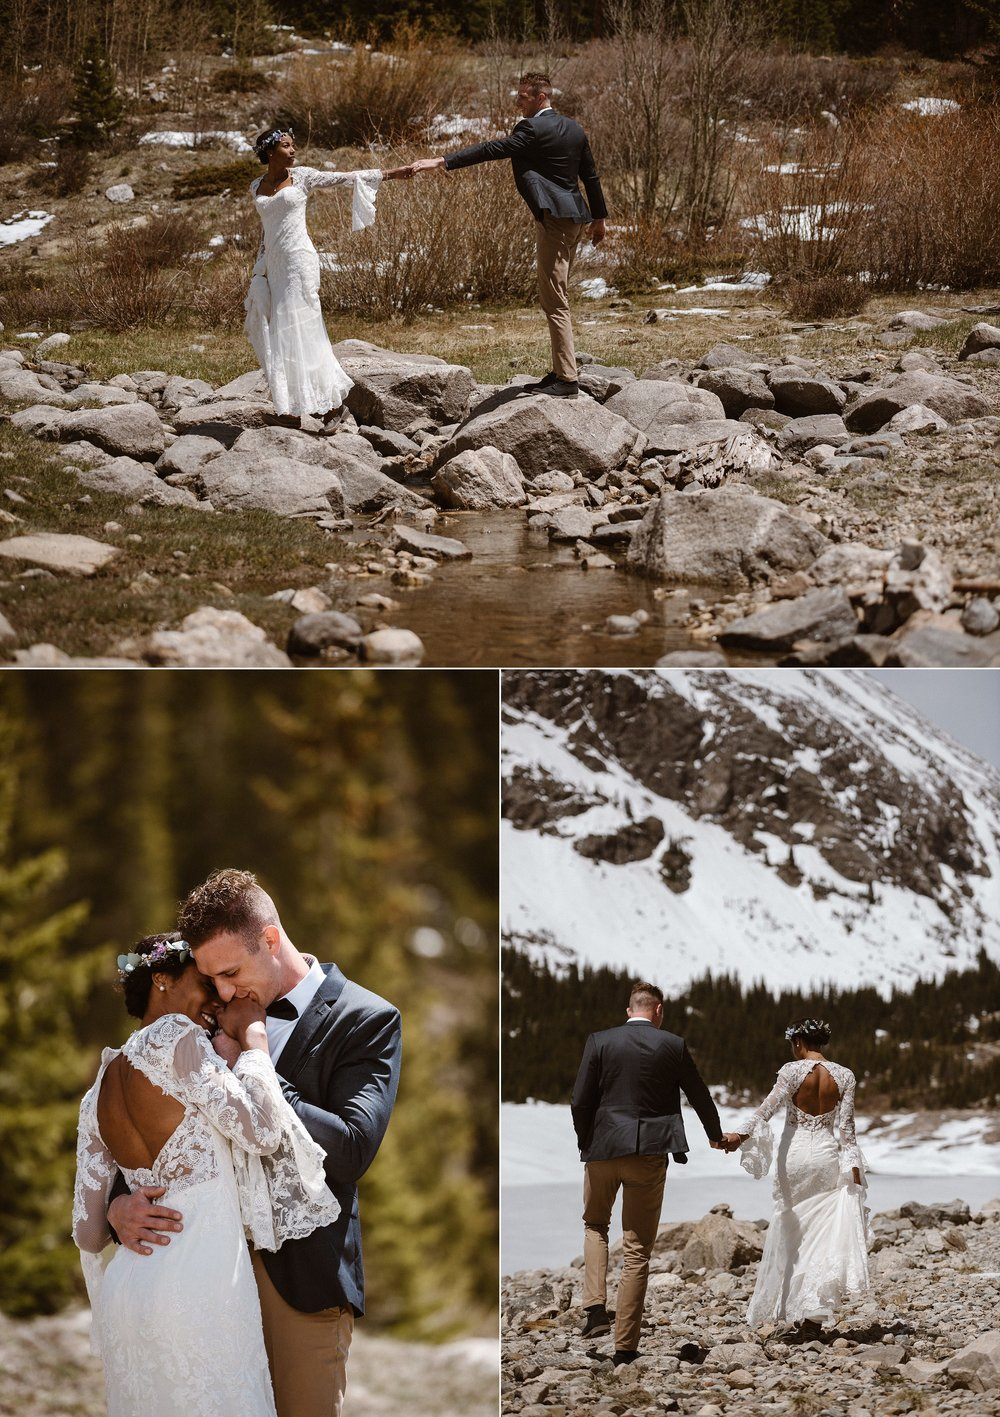 winter-elopement-snowy-elopement-Loveland-Pass-wedding-Loveland-Pass-elopement-Arapahoe-Basin-wedding-Arapahoe-Basin-elopement-Keystone-wedding-Keystone-elopement-Breckenridge-wedding-Breckenridge-elopement-Silverthorne-wedding-Silverthorne-elopement-Dillon-wedding-Dillion-elopement-Dillon-Reservoir-wedding-Sapphire-Point-wedding-Sapphire-Point-elopement-Dillon-Reservoir-elopement-Sapphire-Point-Overlook-elopement-Sapphire-Point-Overlook-wedding-Montgomery-Reservoir-wedding-Hoosier-Pass-wedding-Montgomery-Reservoir-elopement-Hoosier-Pass-elopement-maddie-mae-maddie-mae-photography-colorado-elopement-elopement-coloraodo-intimate-elopement-colorado-mountains-colorado-mountain-wedding-colorado-mountain-elopement-intimate-wedding-ceremony-mountain-wedding-ceremony-colorado-mountain-wedding-ceremony-fur-stole-wedding-fur-elope-colorado-elope-in-colorado-adventure-wedding-adventure-wedding-photography-intimate-wedding-photographer-intimate-wedding-photography-intimate-elopement-photography-intimate-elopement-photographer-traveling-elopement-photographer-traveling-elopement-photography-colorado-elopement-locations-harsh-sun-sunny-mountain-elopement-sunrise-elopement-adventure-hiking-elopement-forest-hiking-elopement-all-day-elopement-adventure-adventure-elopement-photography-sunny-elopement-photography